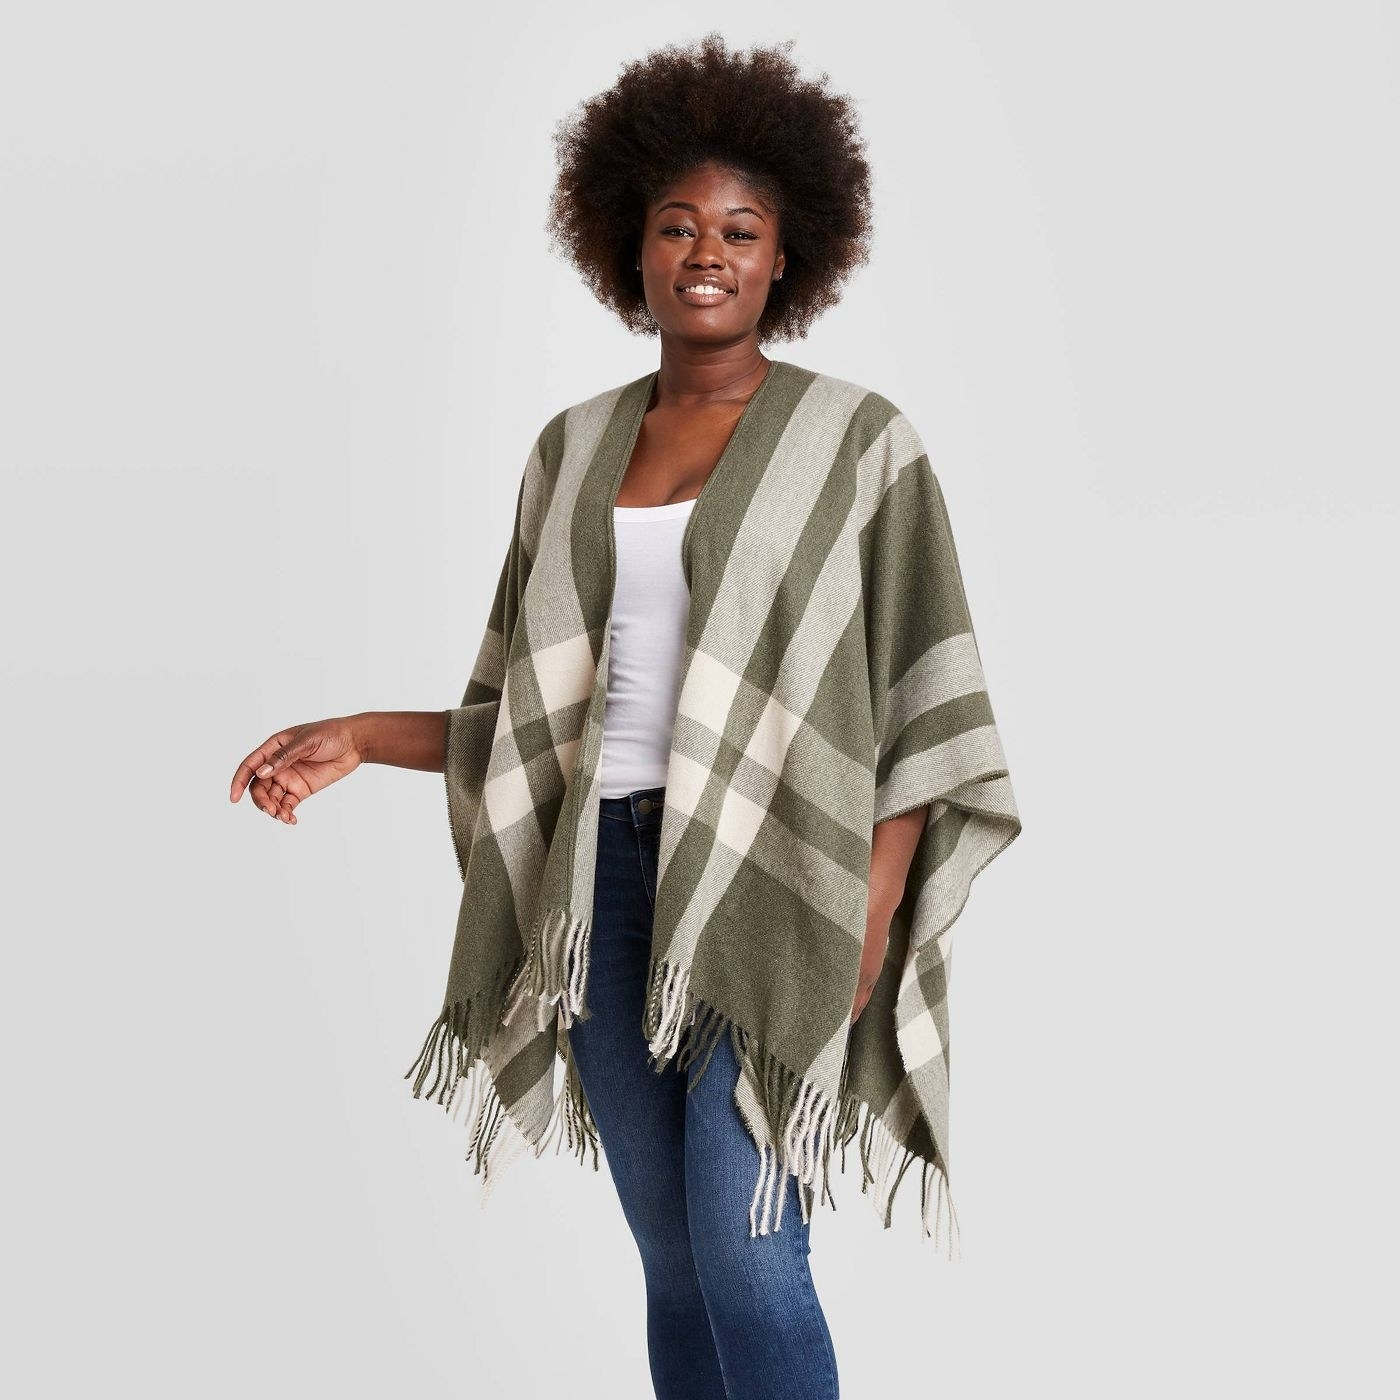 Model in plaid ruana kimono jacket